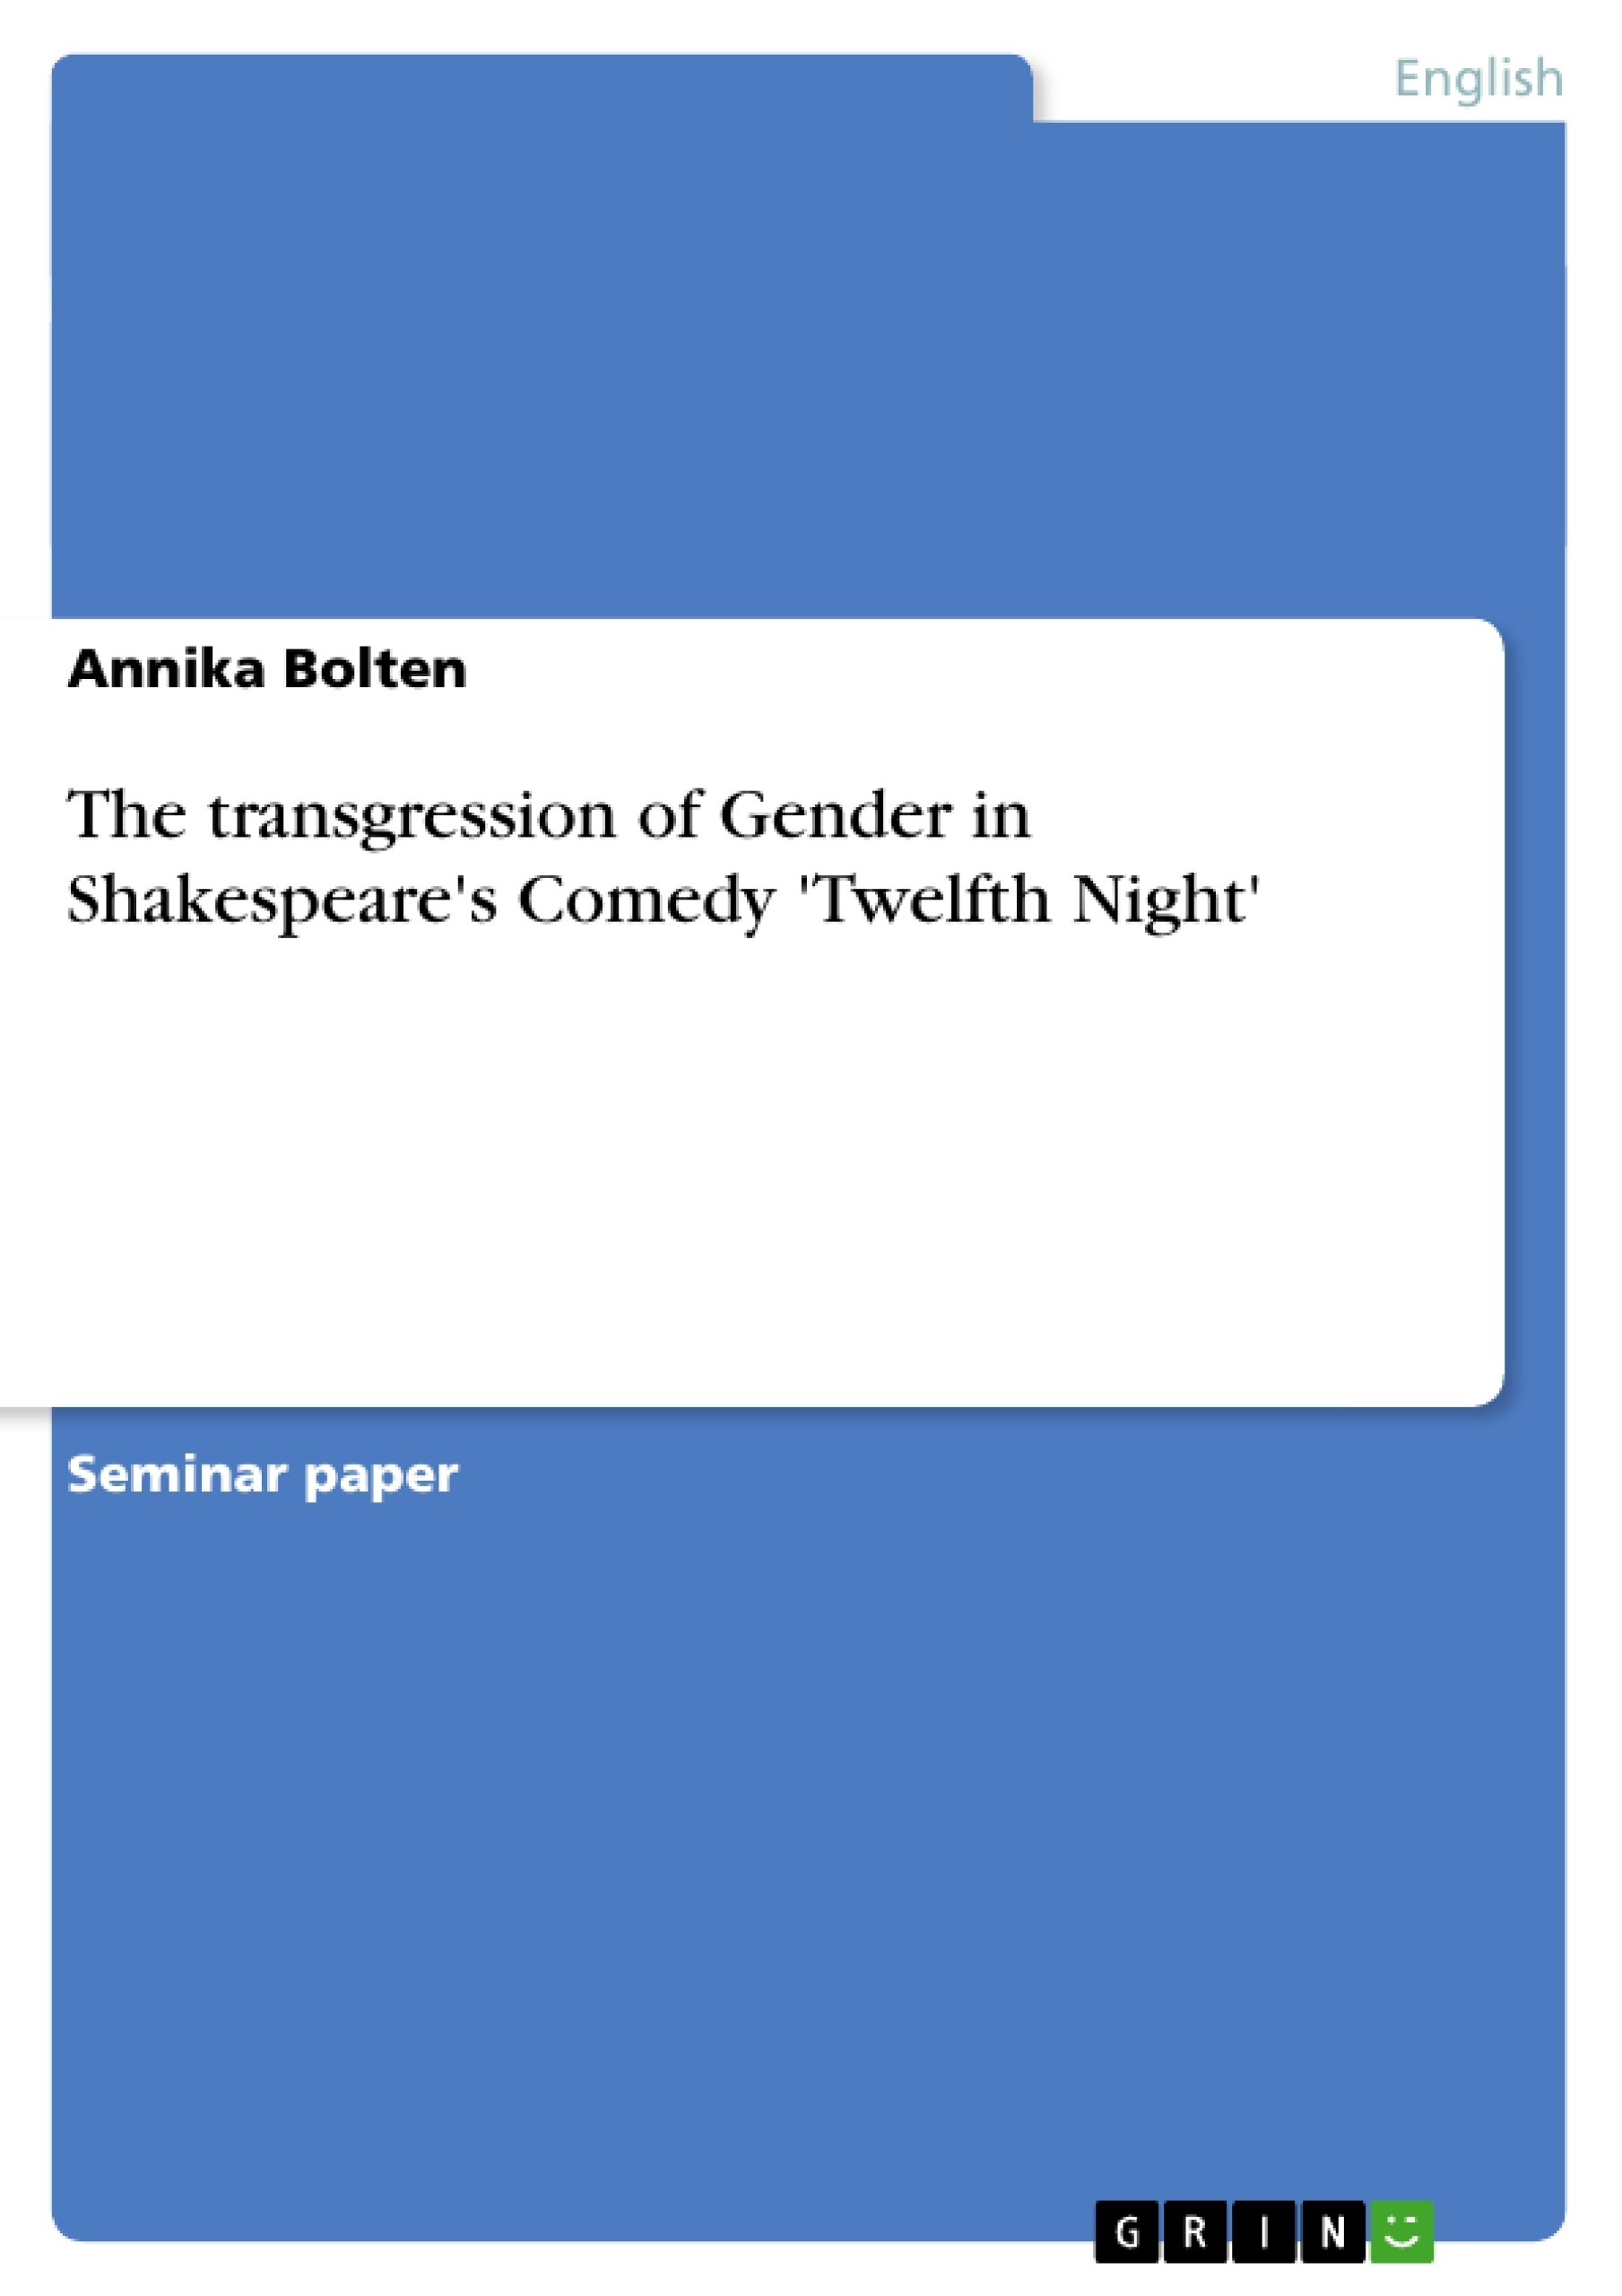 the transgression of gender in shakespeare s comedy twelfth night  upload your own papers earn money and win an iphone x